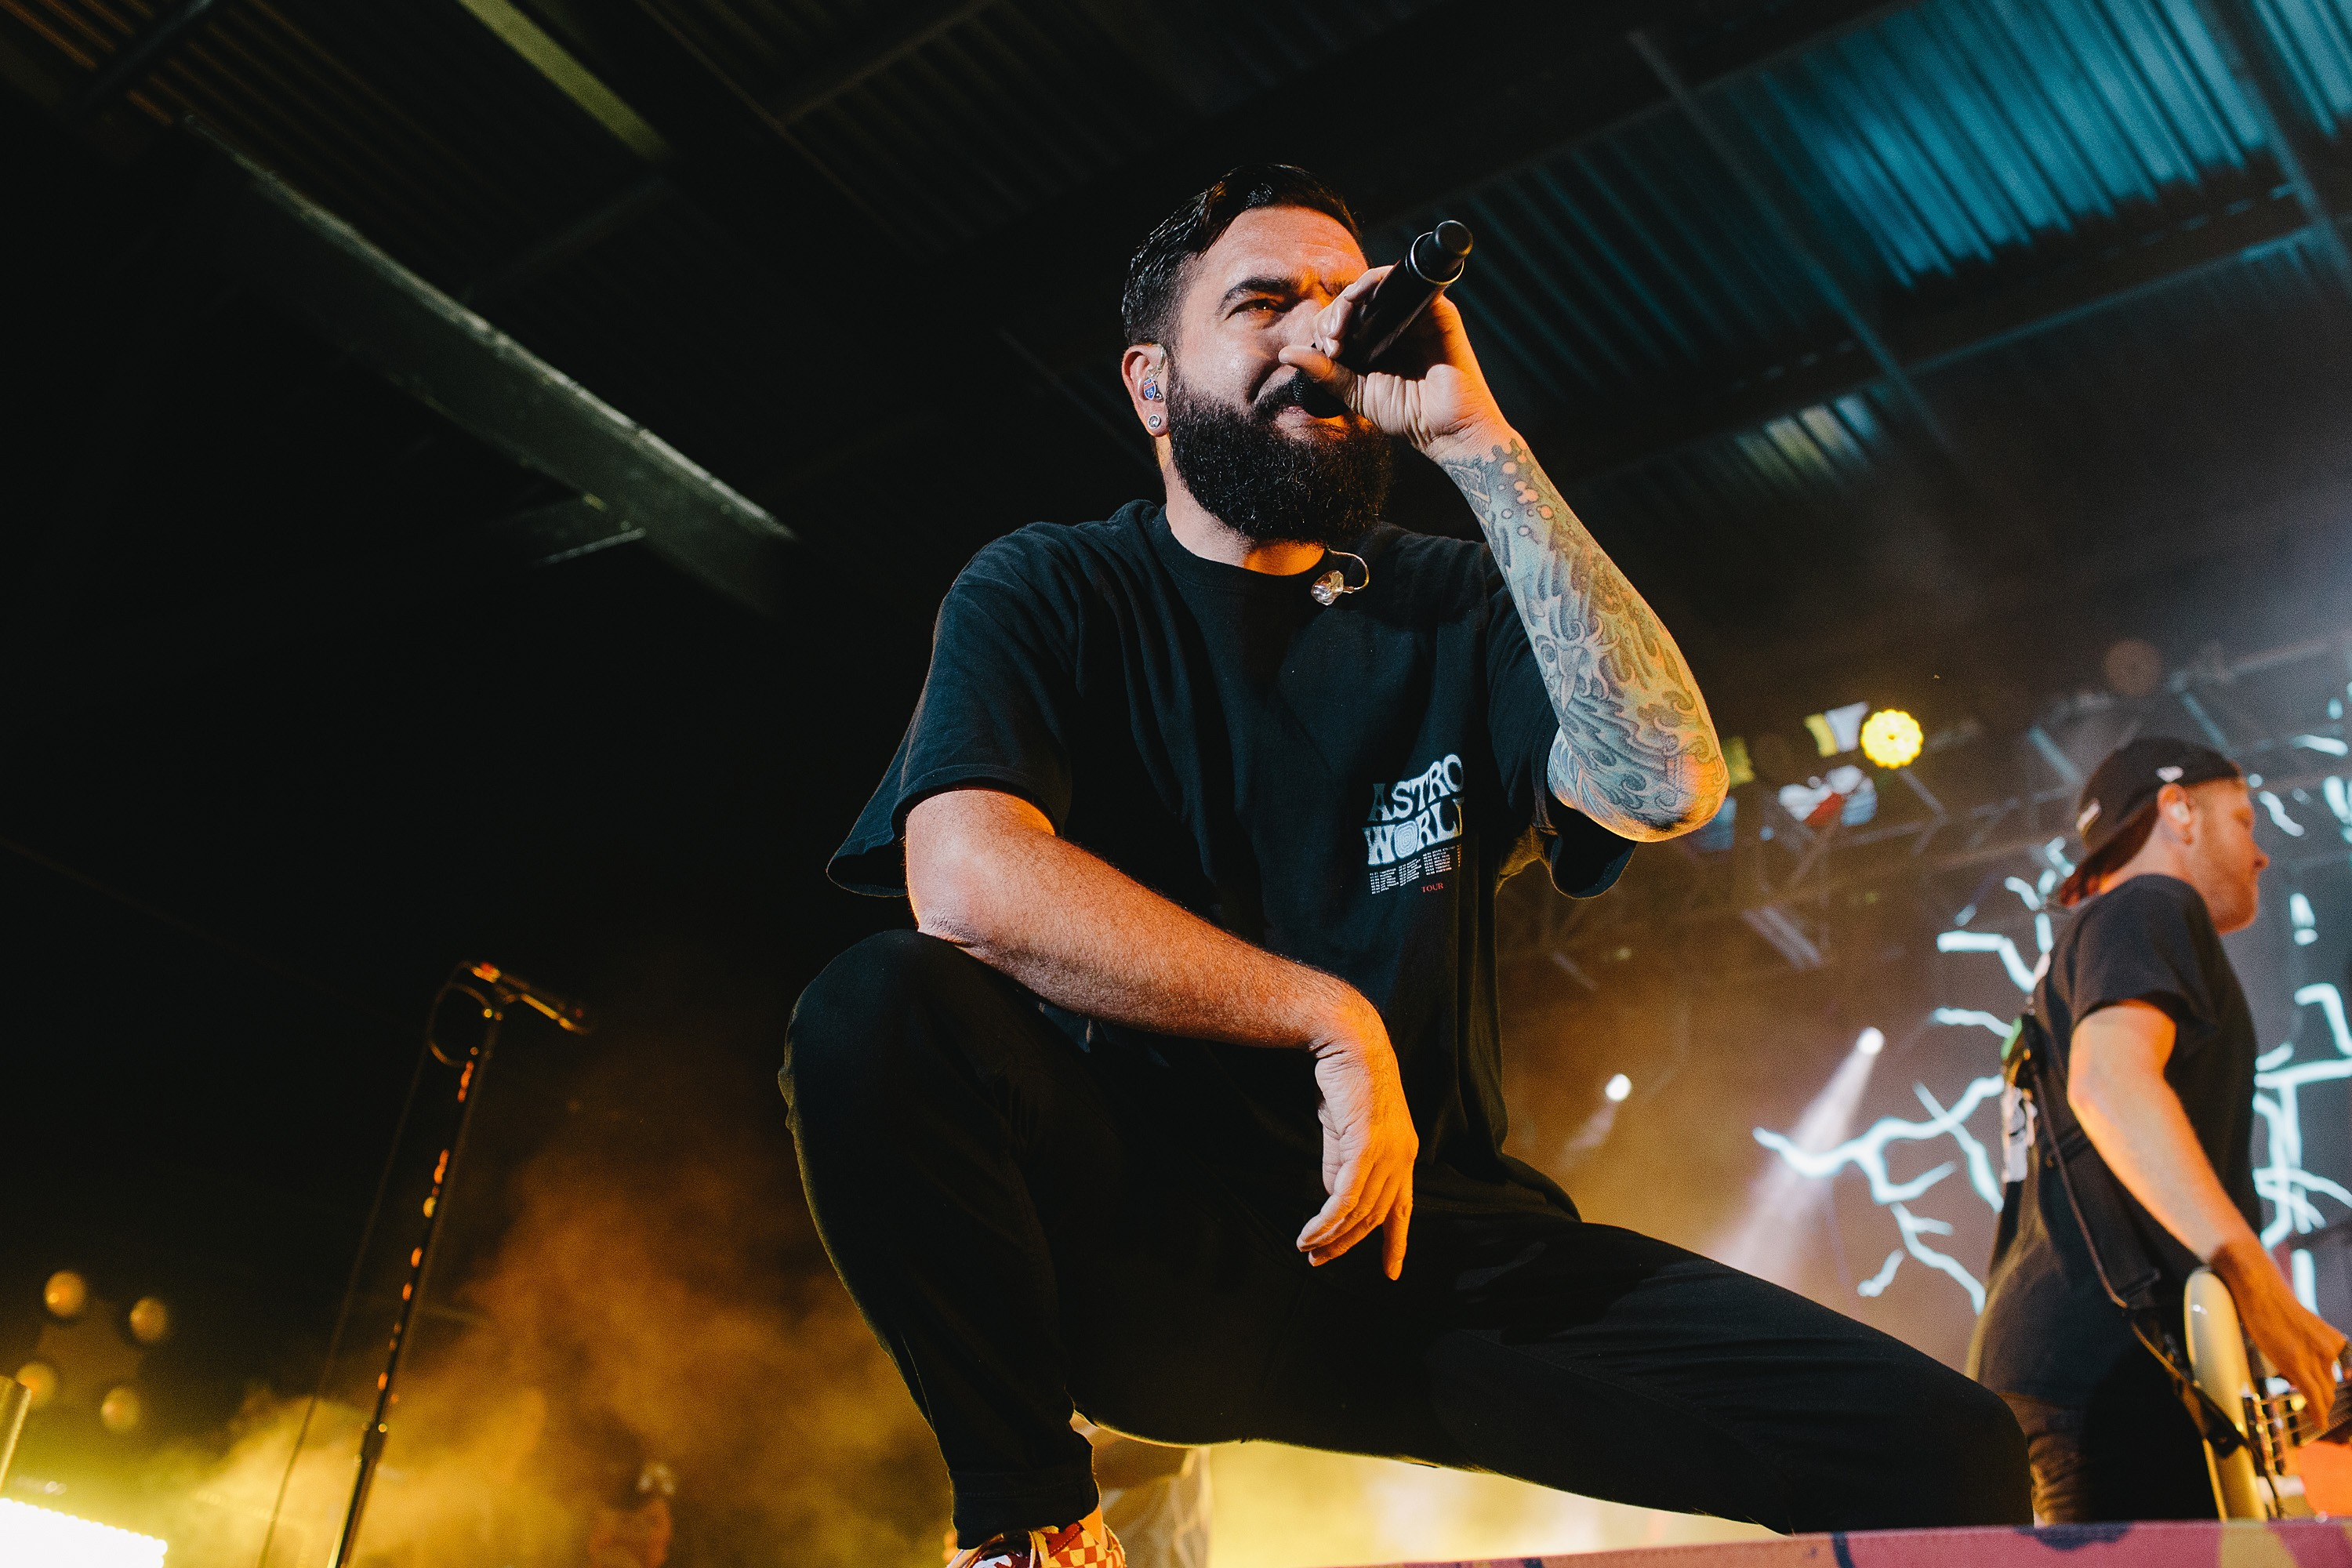 BIRMINGHAM, ALABAMA - JUNE 15: Jeremy McKinnon of A Day to Remember performs at Avondale Brewing on June 15, 2019 in Birmingham, Alabama. (Photo by David A. Smith/Getty Images) (Foto: Getty Images)